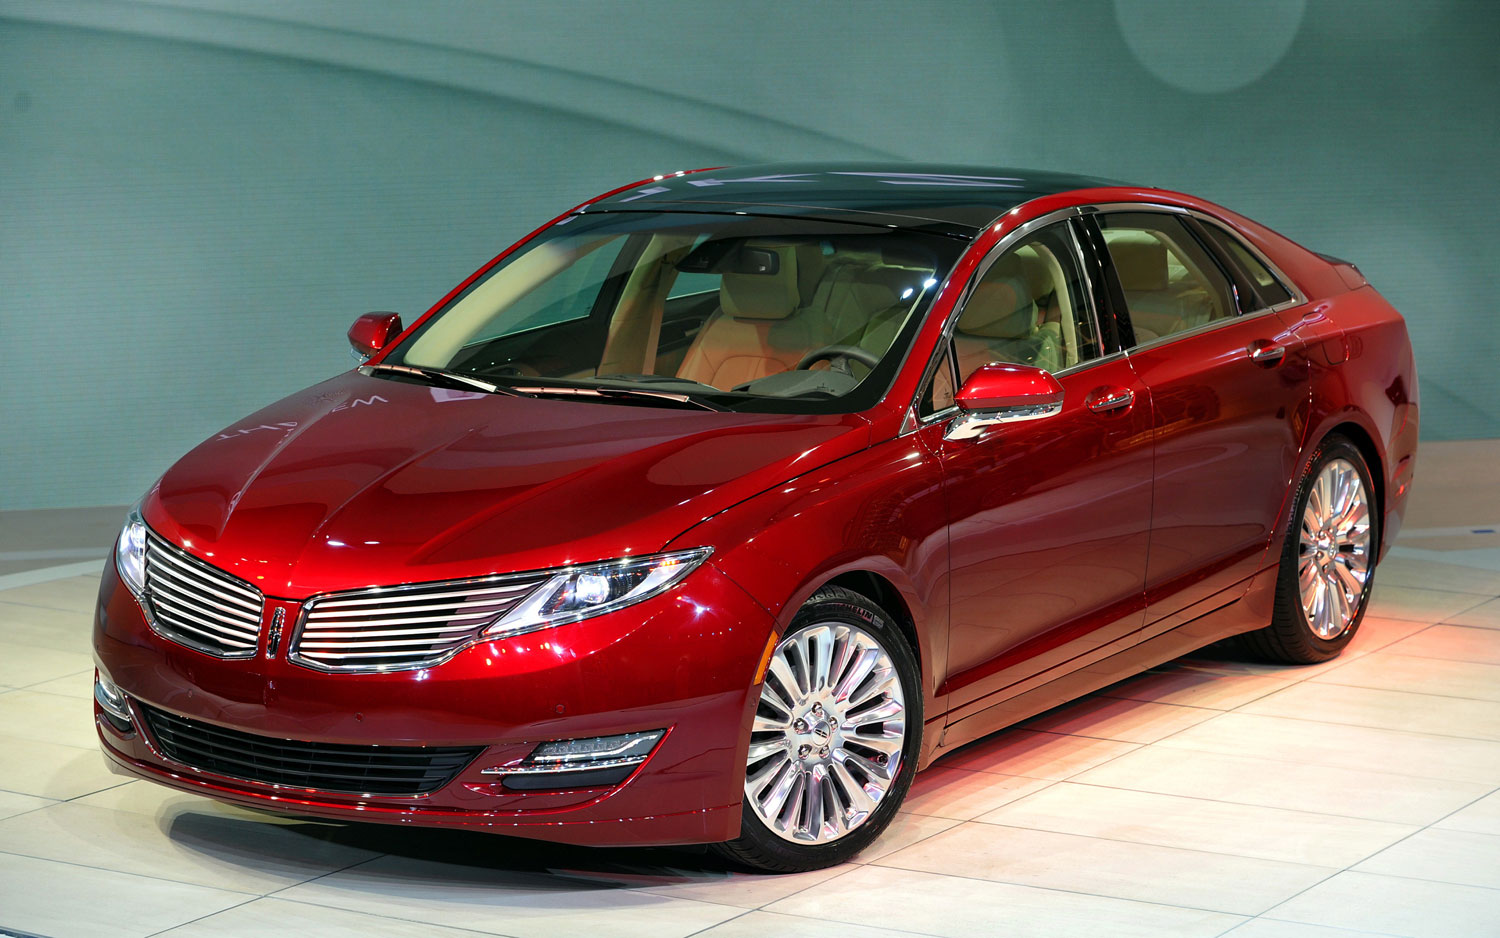 Latest Cars Models: Lincoln mkz 2013